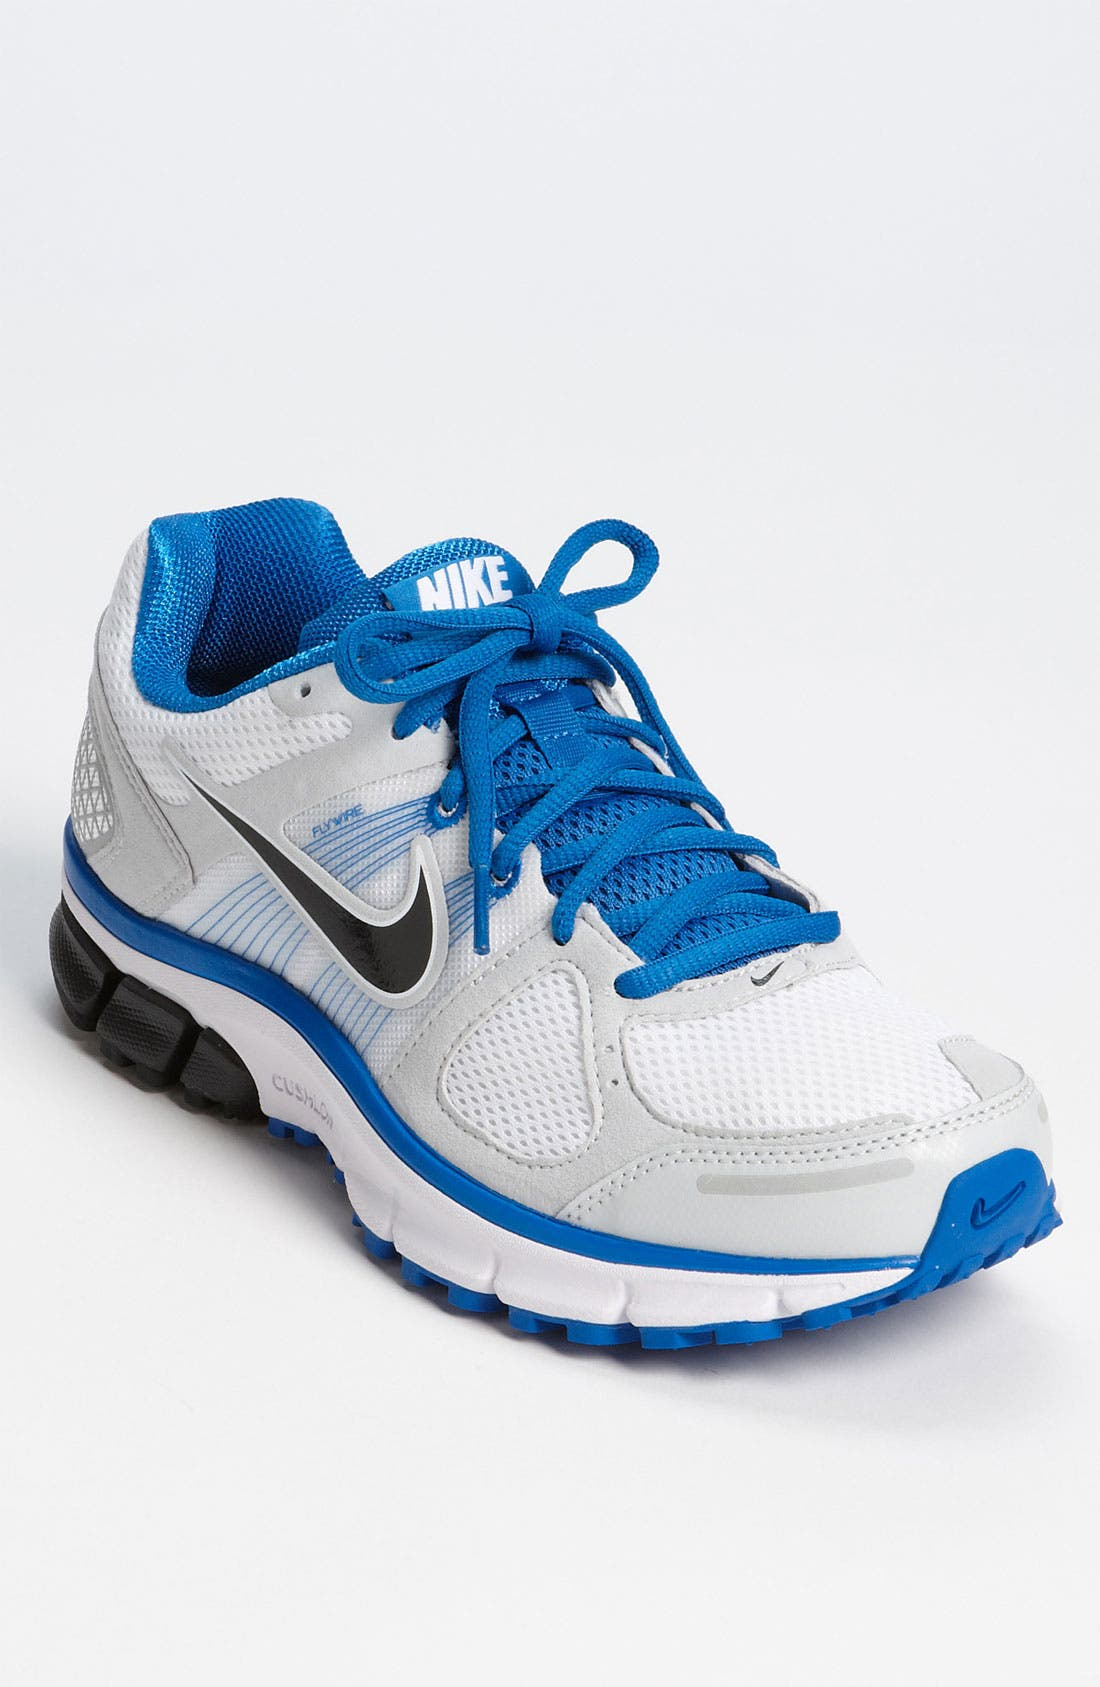 Main Image - Nike 'Air Pegasus+ 28' Trail Running Shoe (Men)